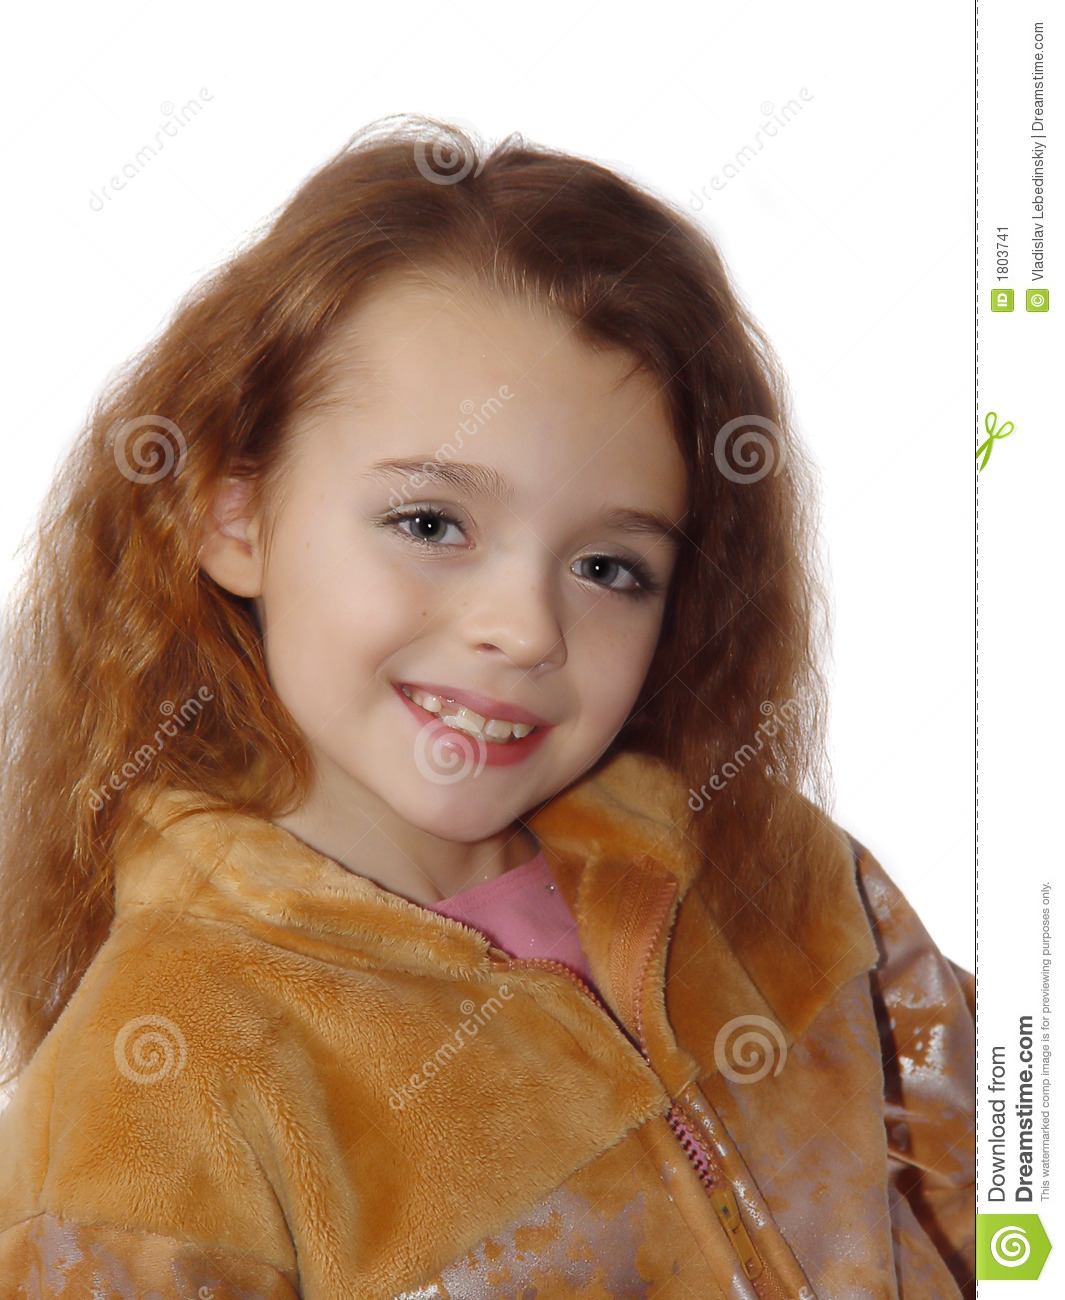 Little girl expressing photo model